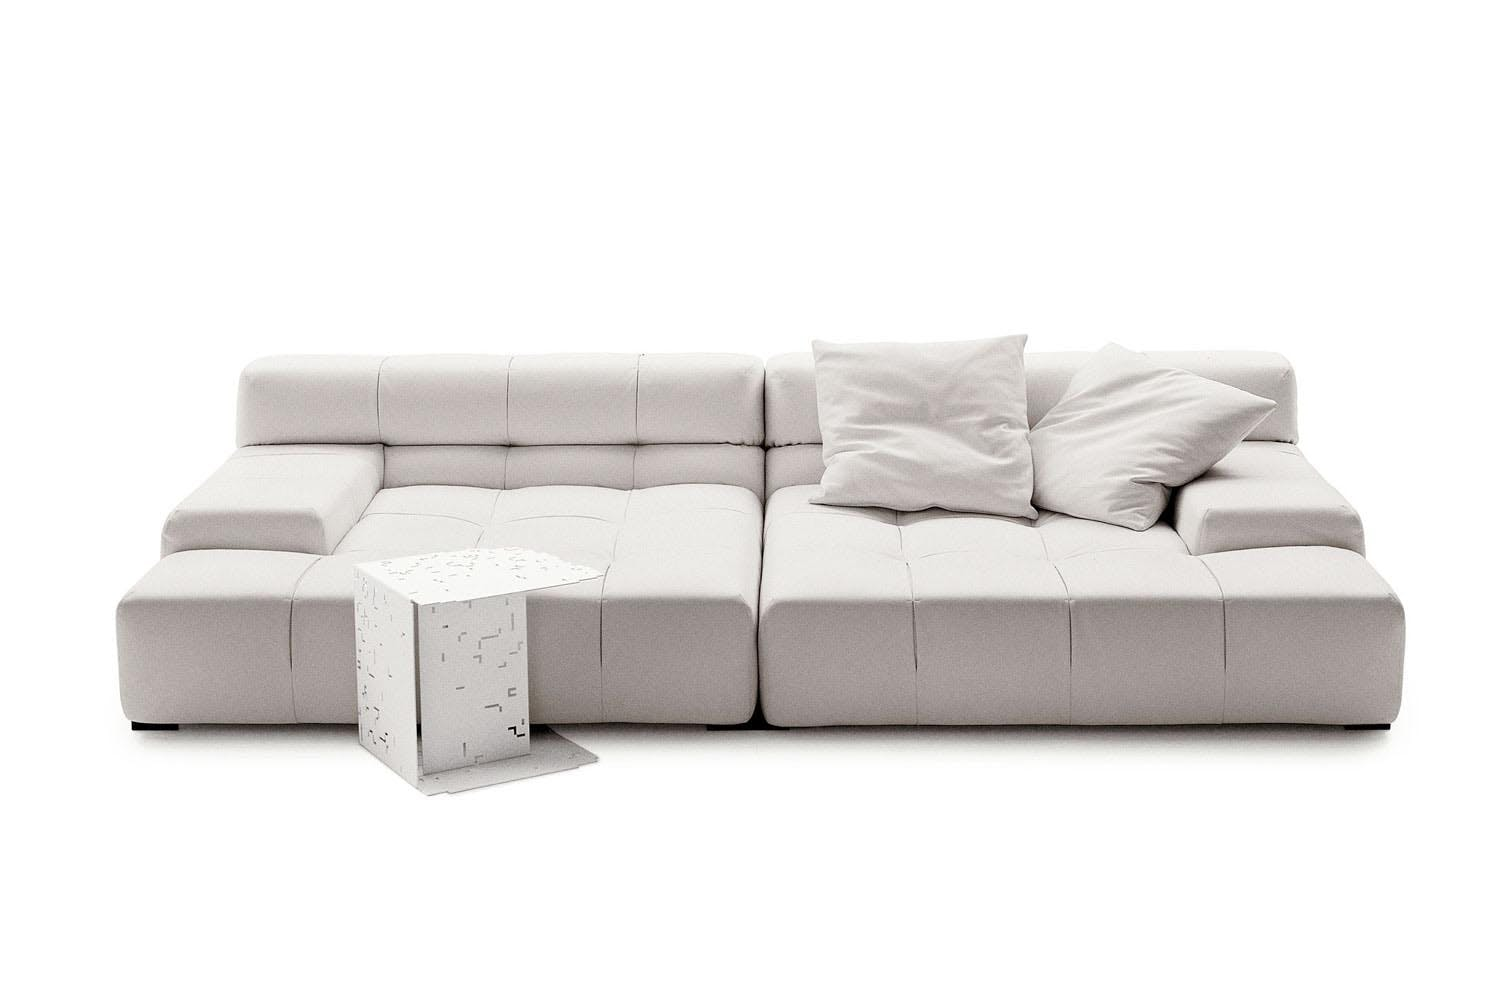 tufty time leather sofa by patricia urquiola for b b. Black Bedroom Furniture Sets. Home Design Ideas